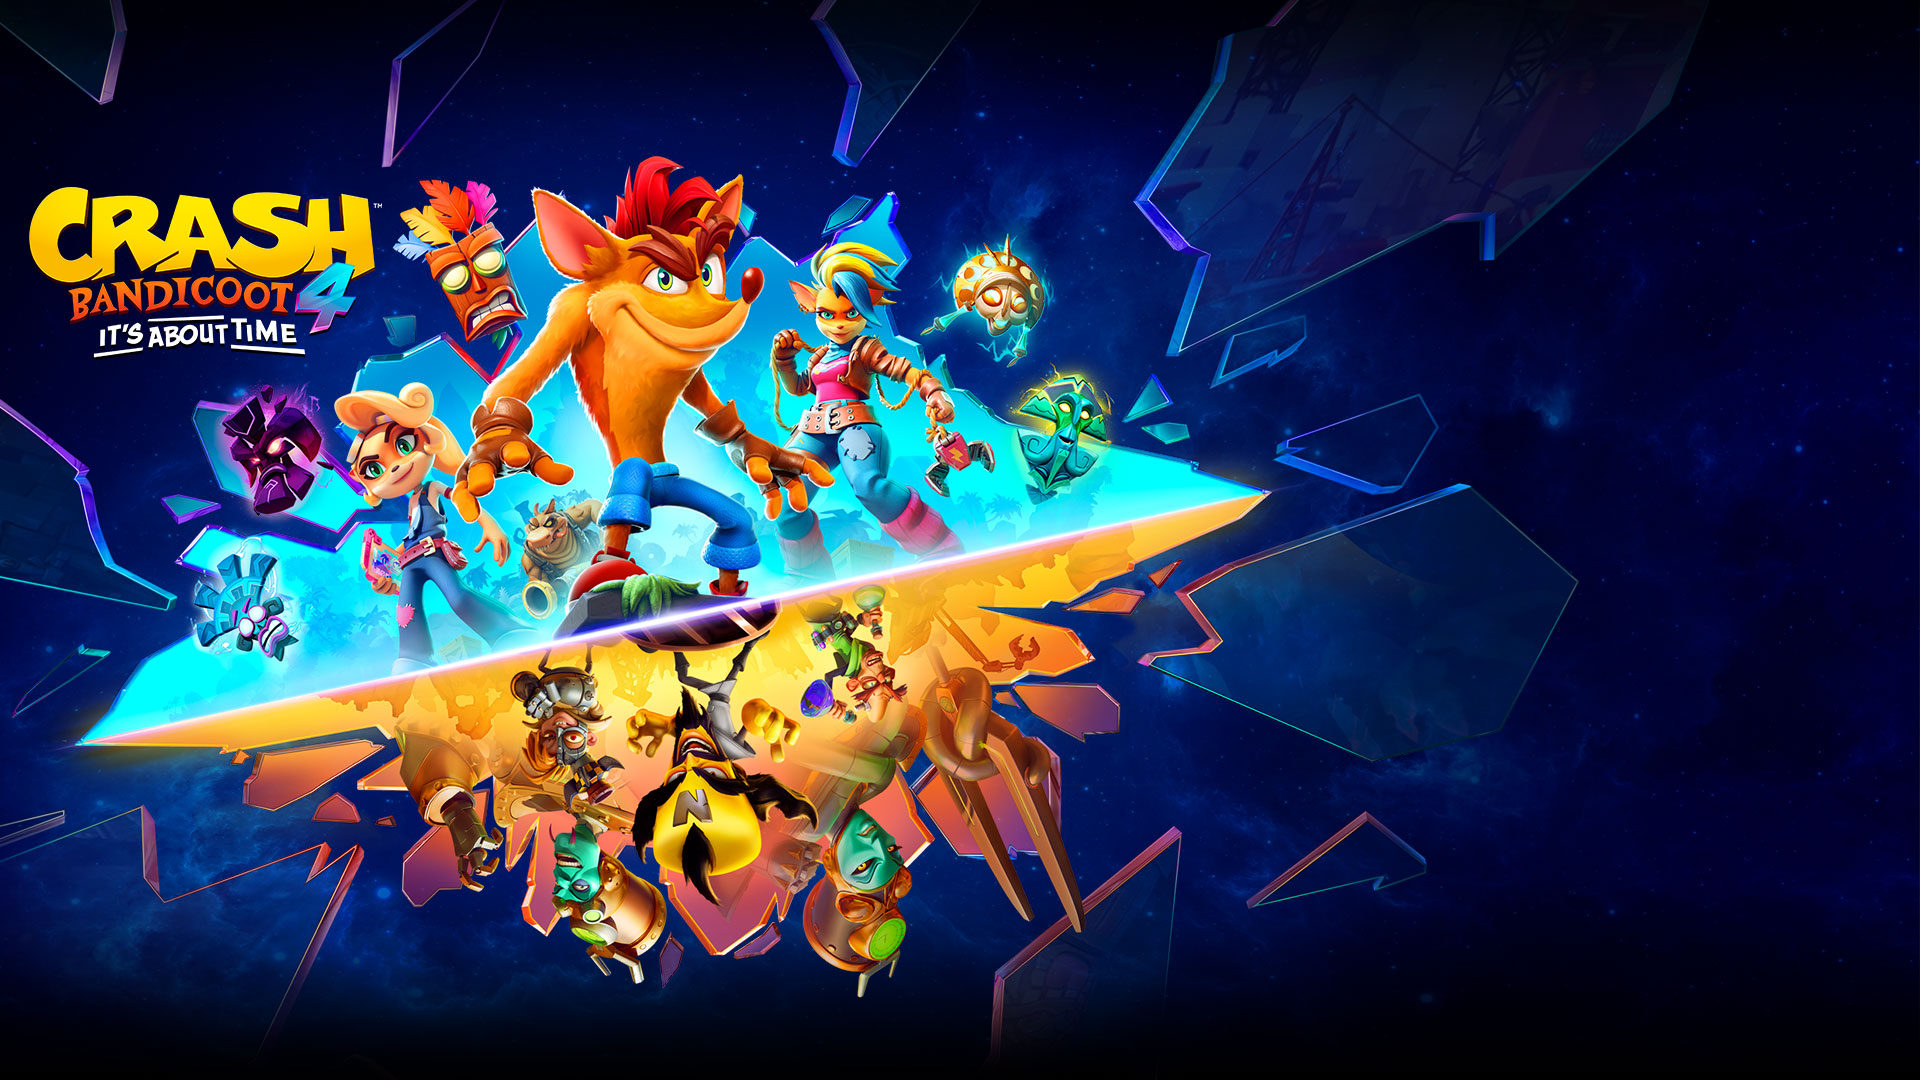 Crash Bandicoot 4, It's About Time, Crash, Coco, and other characters break through glass, underneath them is Doctor Neo Cortex and his minions.